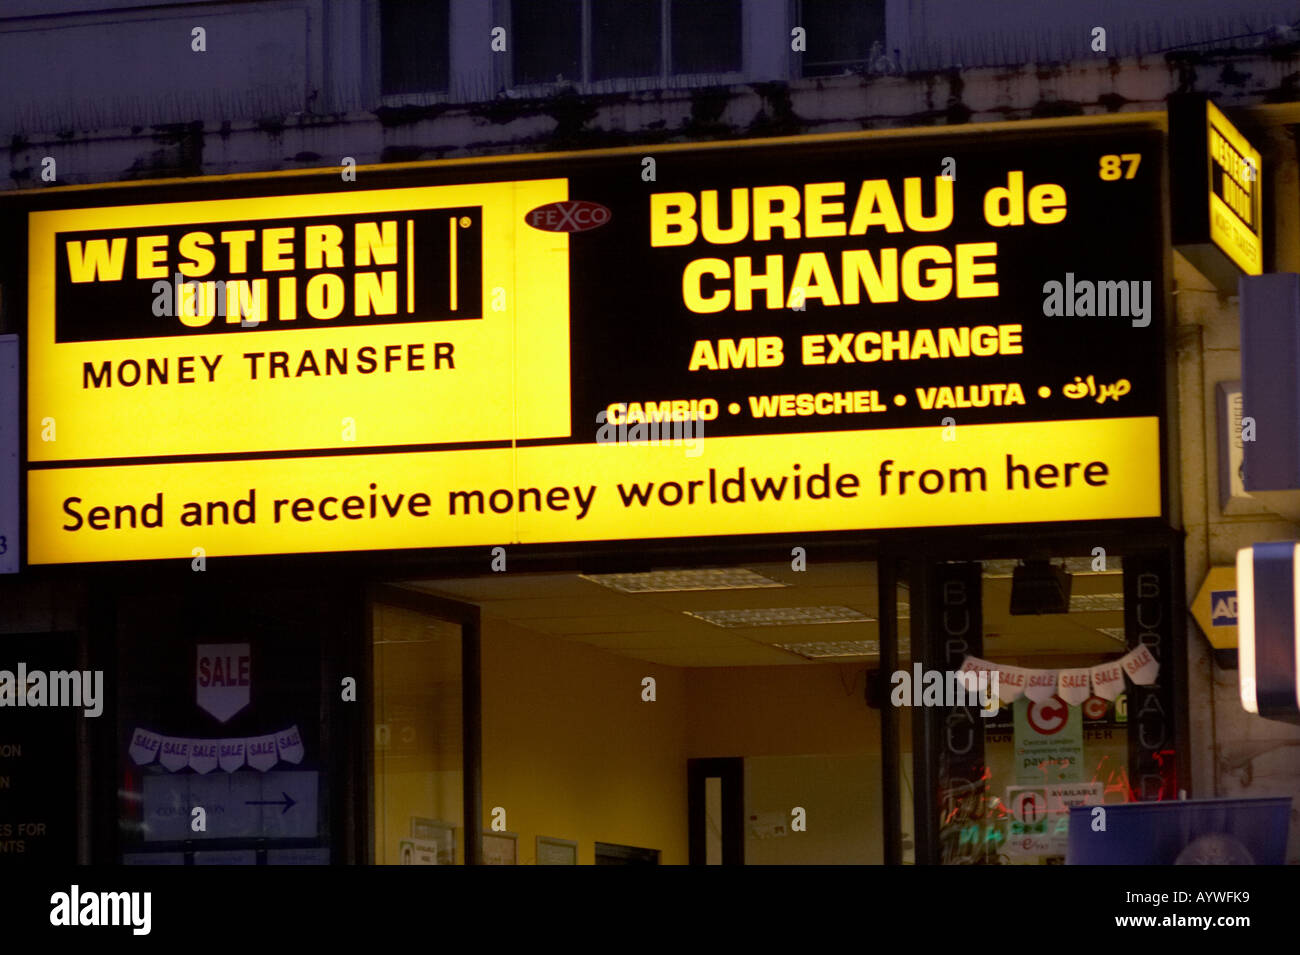 Western union money transfer bureau de change in london uk for Bureau change